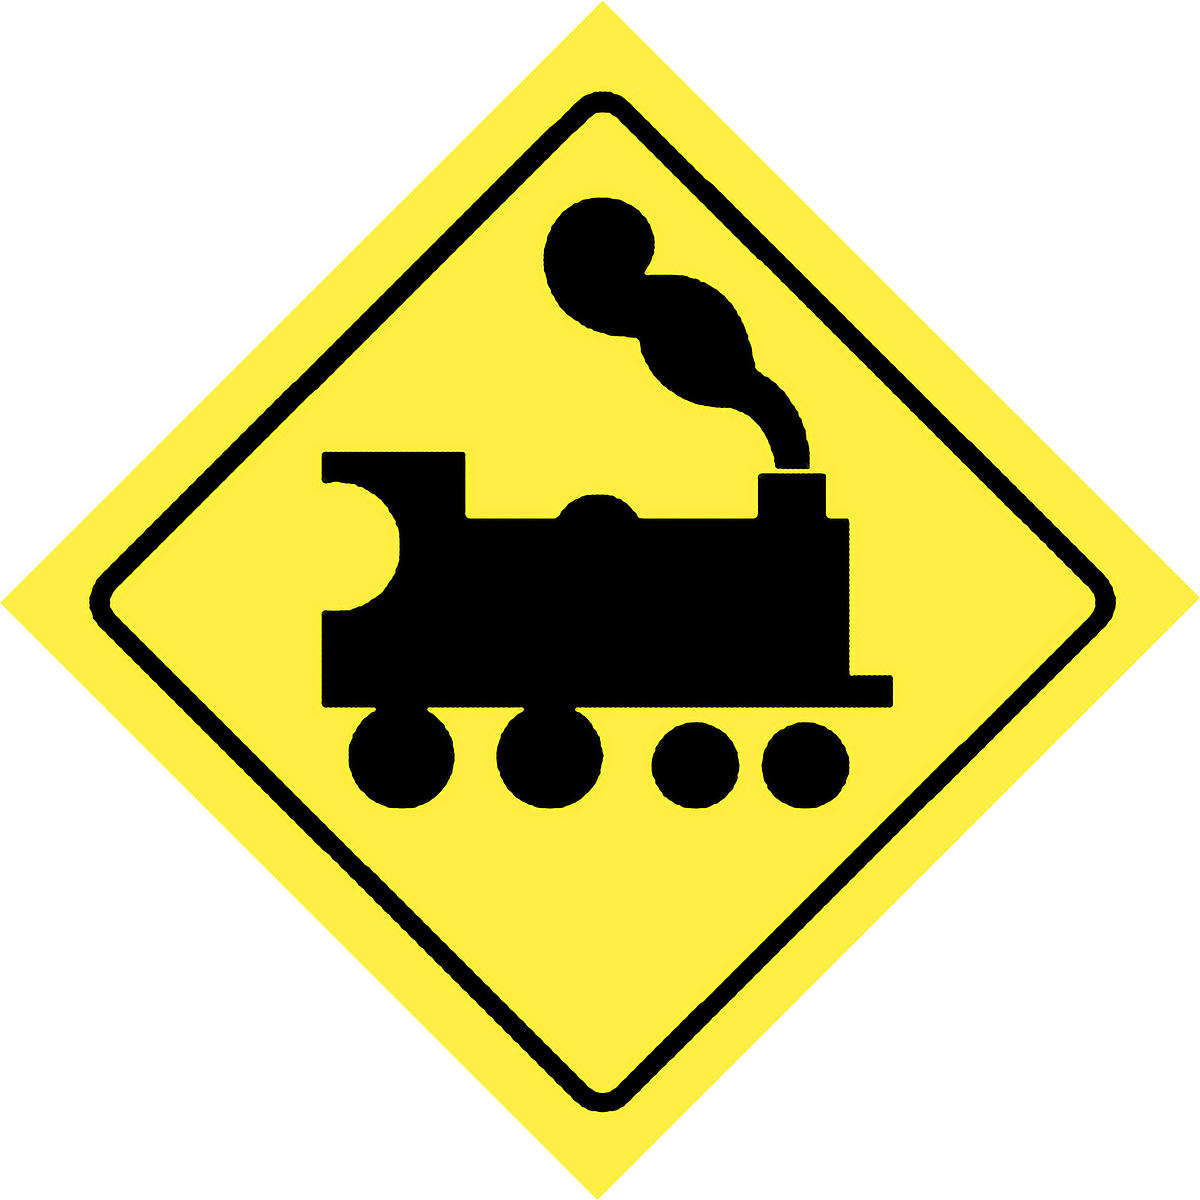 Steve Fuller Photos | Road sign to warn of railway crossing at